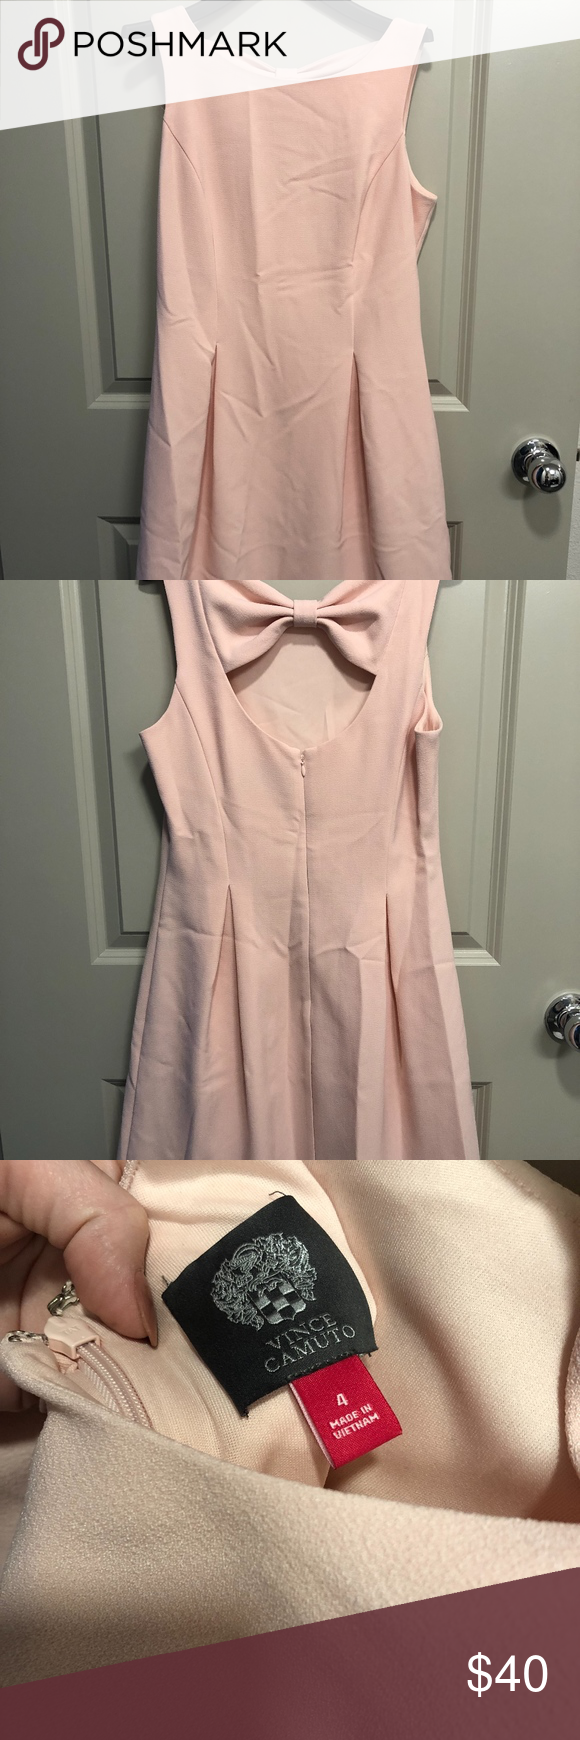 Vince Camuto Pink Dress With Bow In Back This Is The Perfect Spring Wedding Ensemble Vince Camuto Knee Length Light Light Pink Dress Dress With Bow Pink Dress [ 1740 x 580 Pixel ]